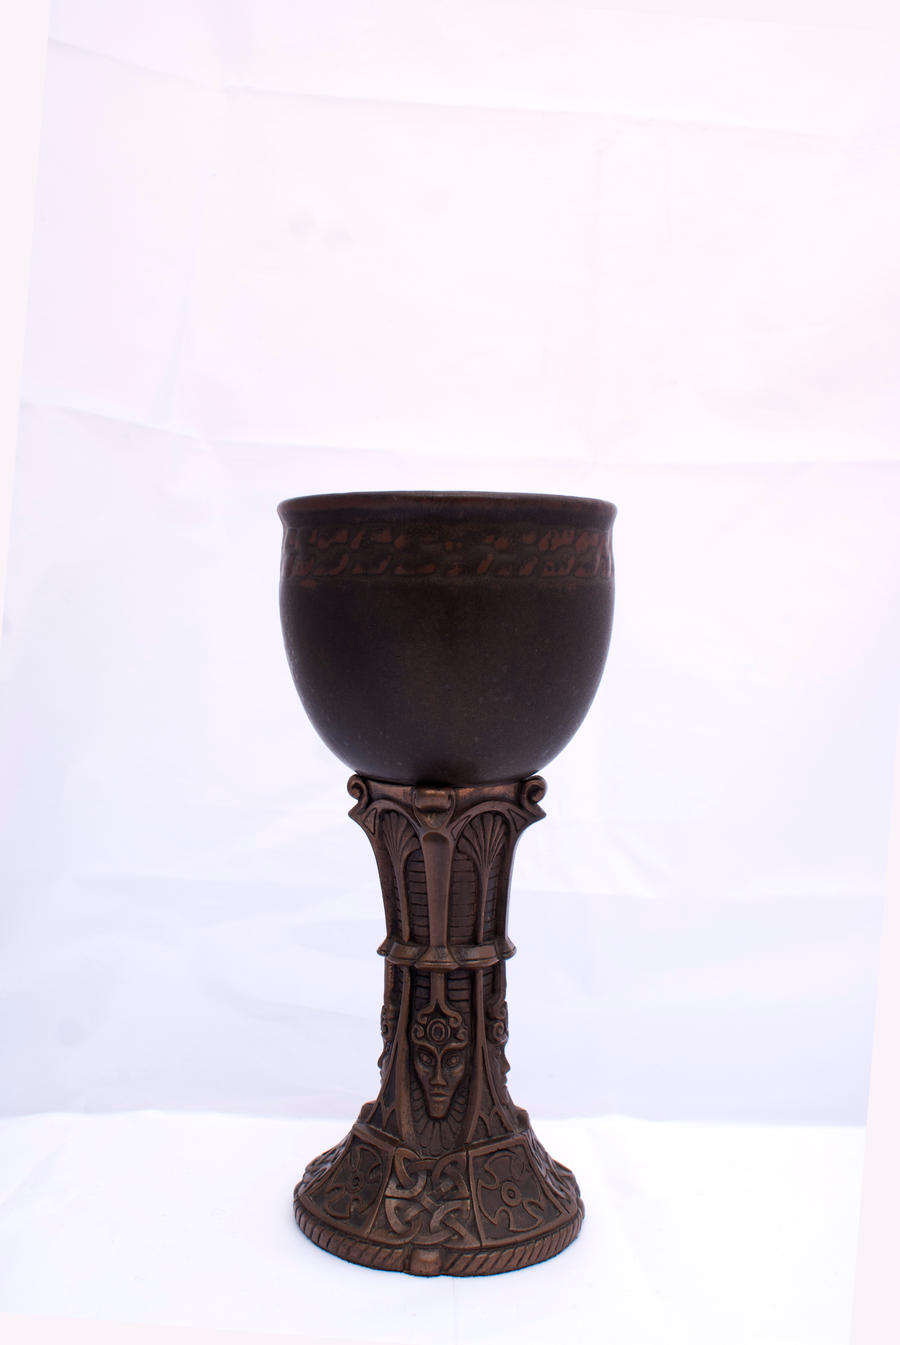 Chalice by wintersmagicstock